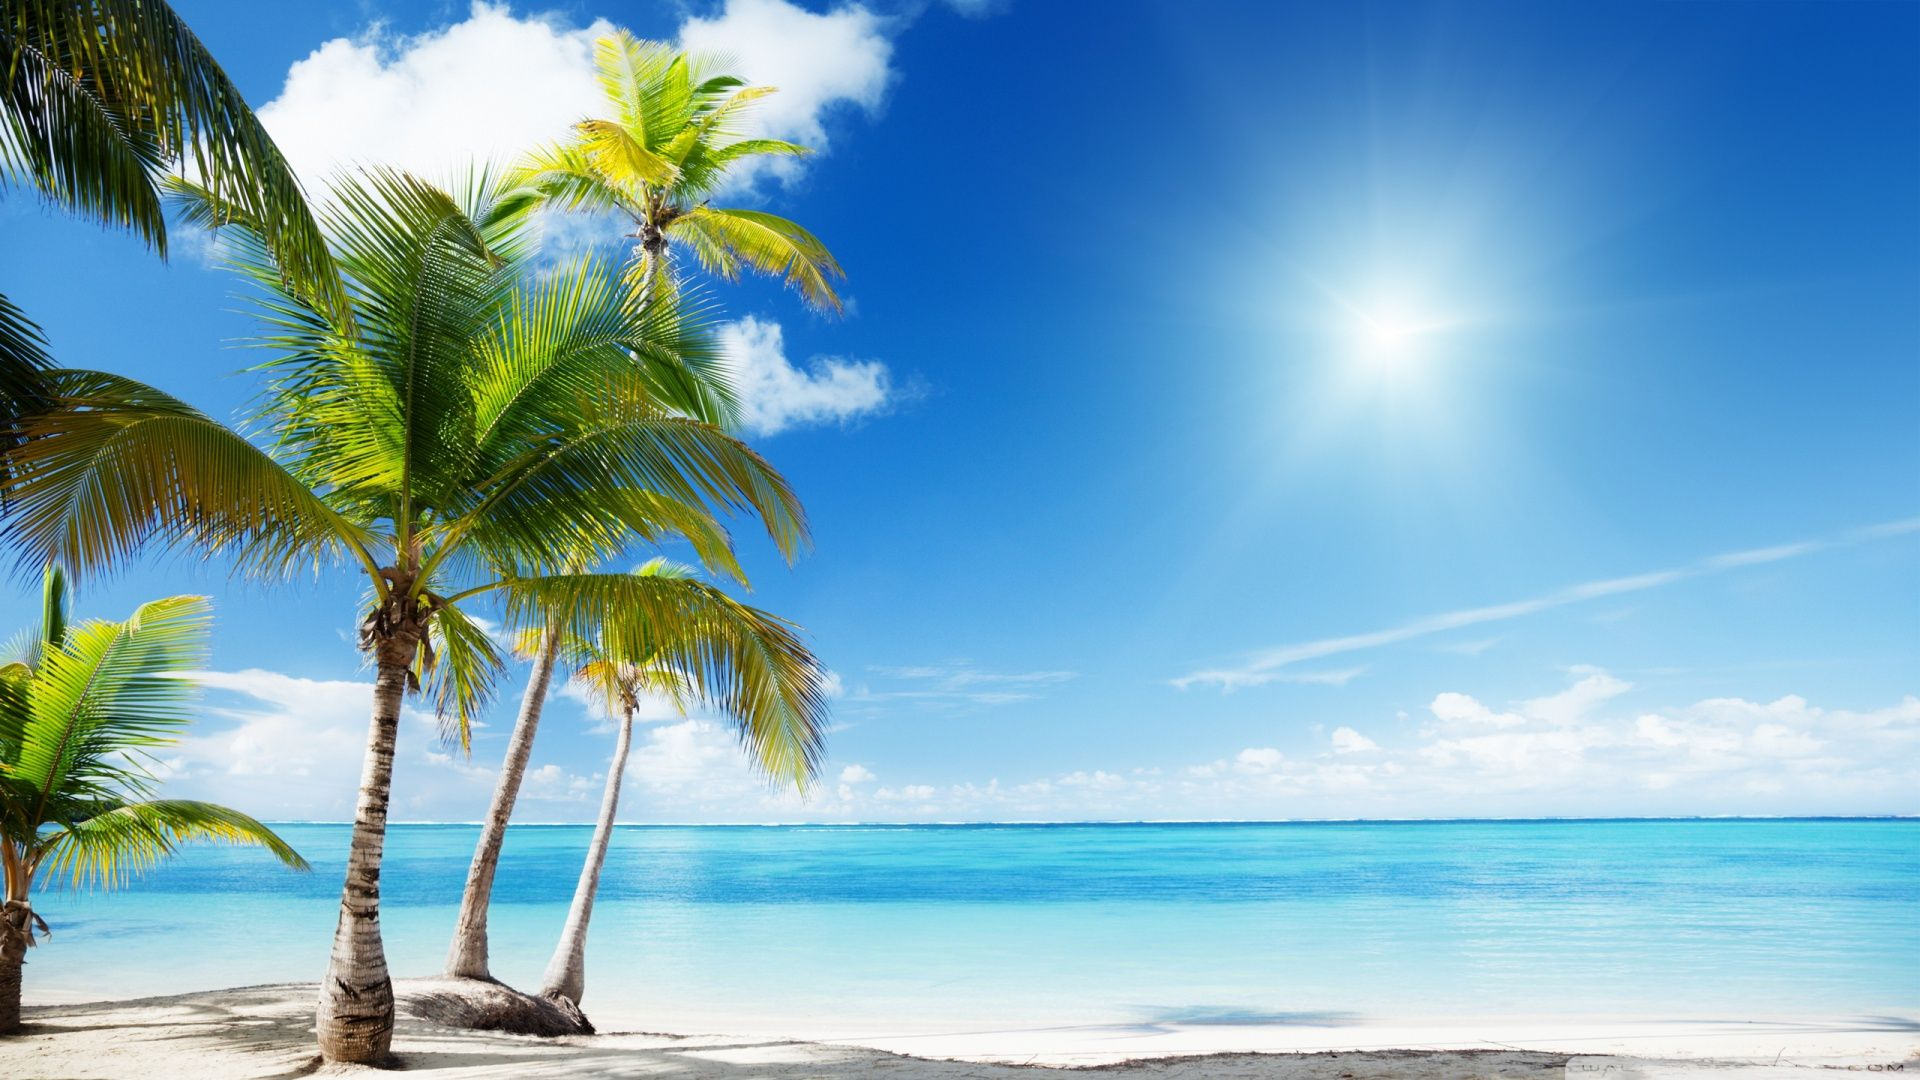 Tropical Beach Paradise HD Desktop Wallpaper : Widescreen : High Pictures Gallery